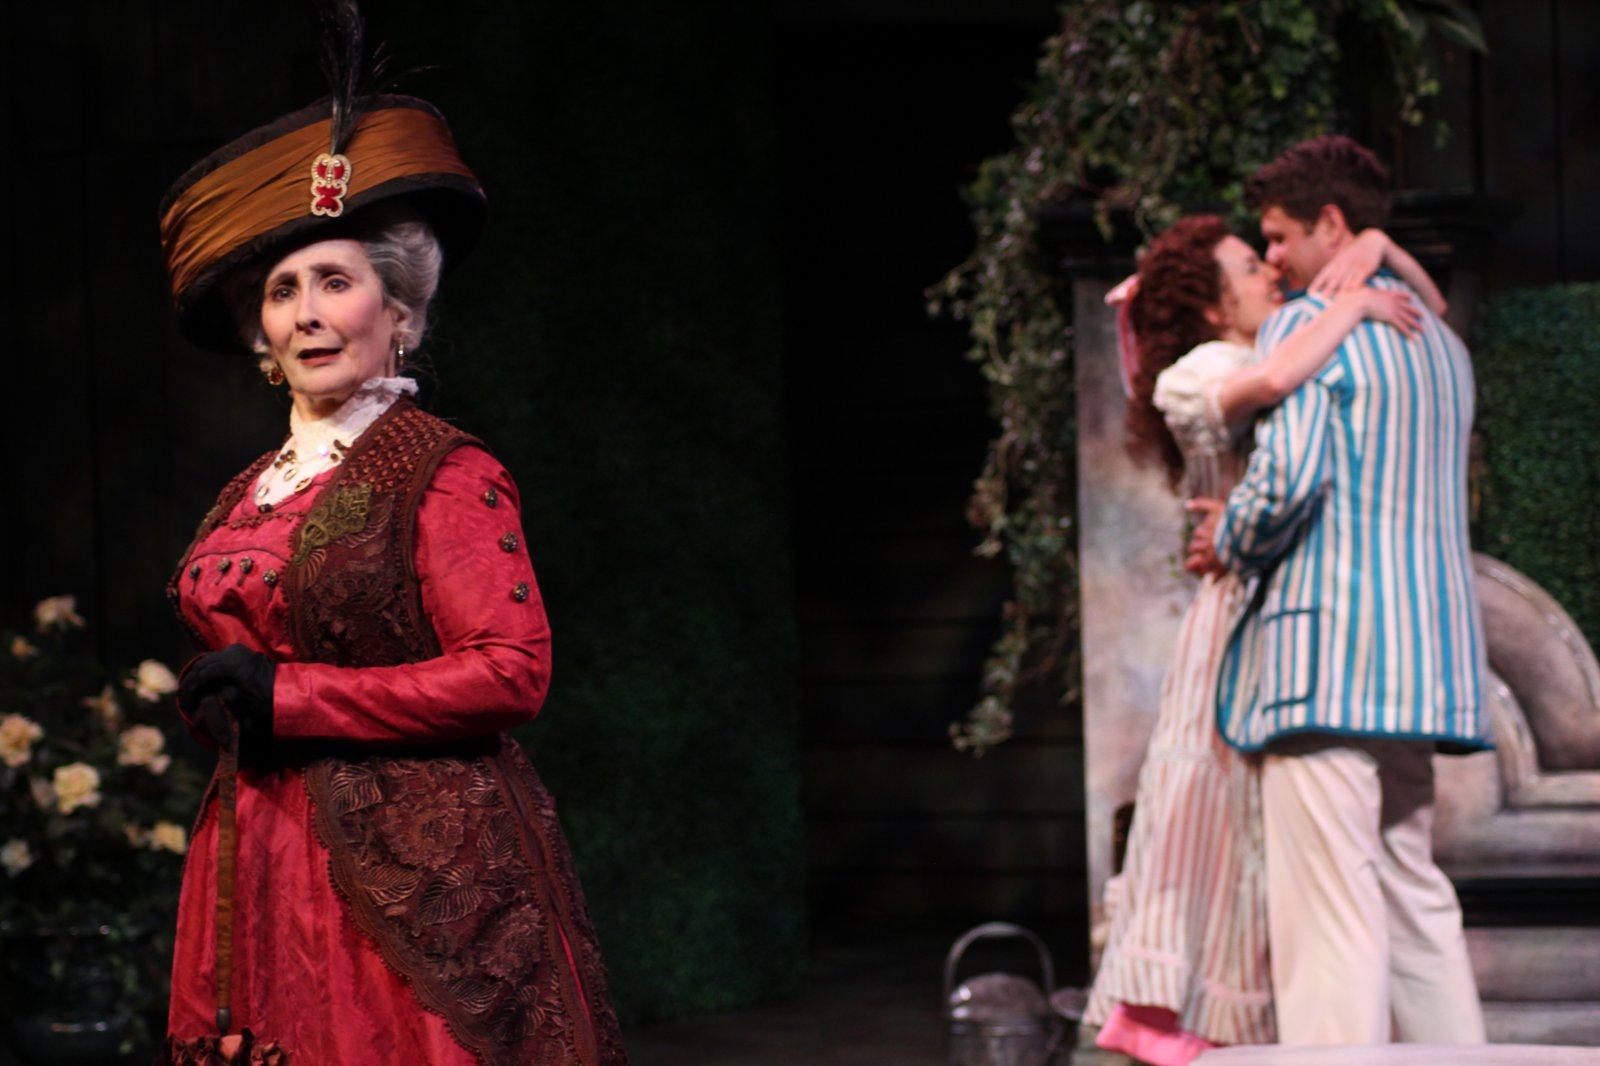 Sarah Day, Kelsey Brennan and Marcus Truschinski in The Importance of Being Earnest, 2014